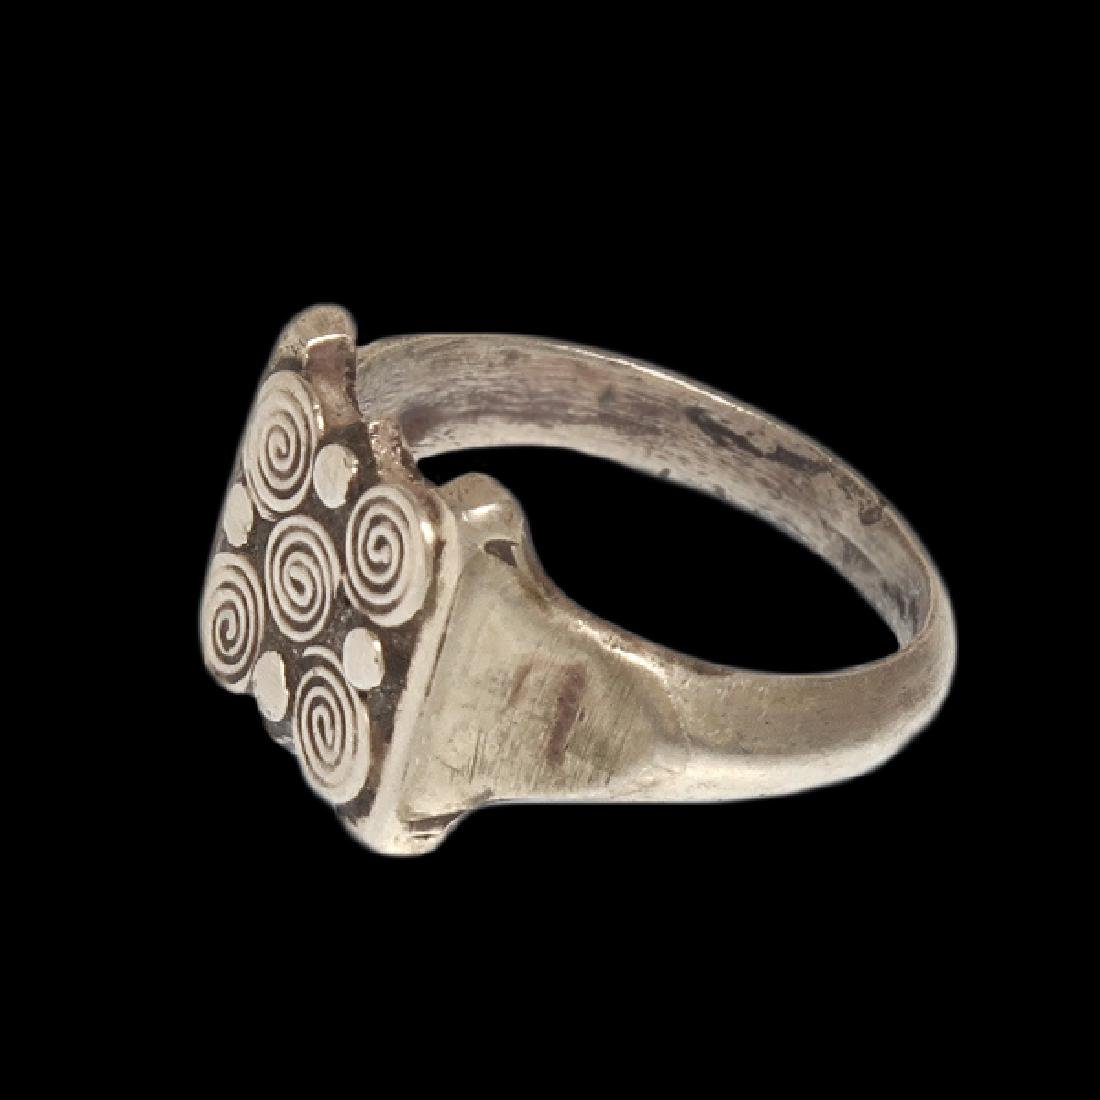 Viking Silver Ring with Spiral Patterns, c. 10th - 4